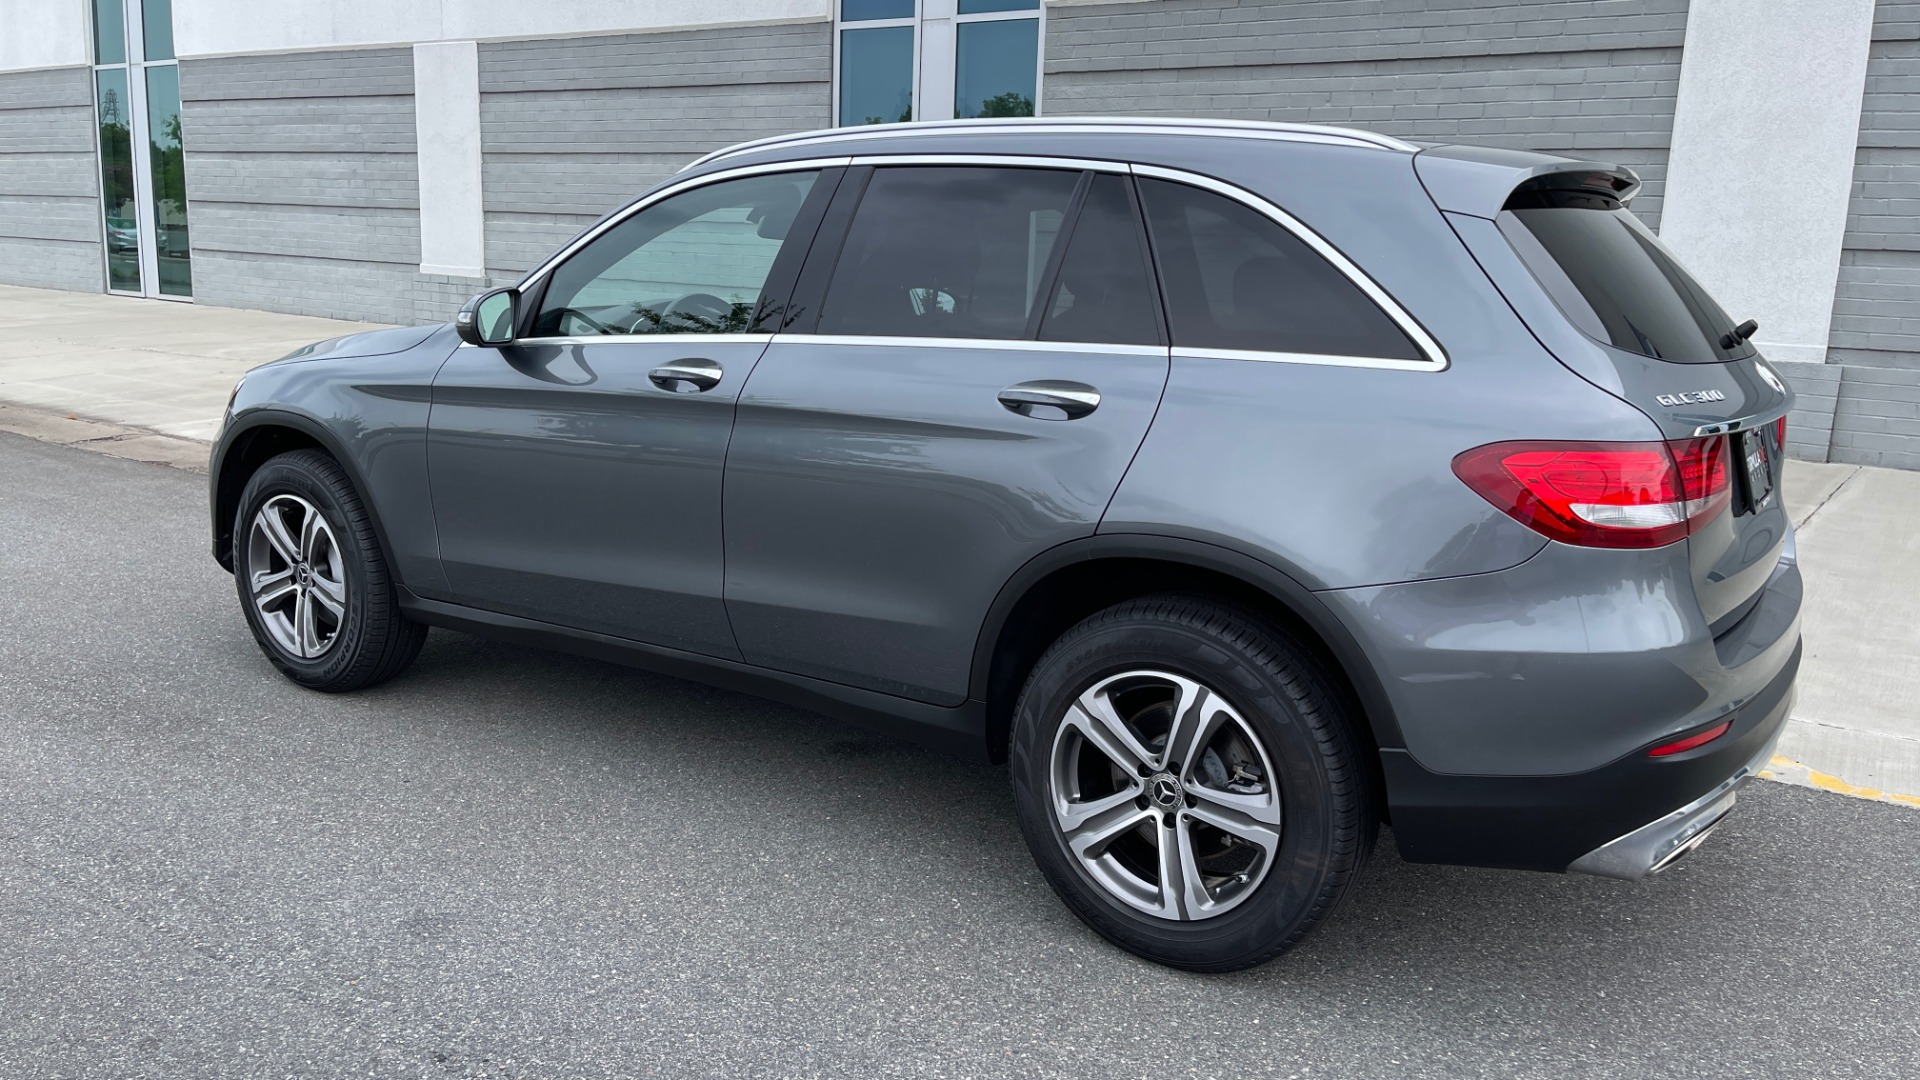 Used 2018 Mercedes-Benz GLC 300 4MATIC PREMIUM / PANO-ROOF / HTD STS / APPLE / REARVIEW for sale $34,295 at Formula Imports in Charlotte NC 28227 5